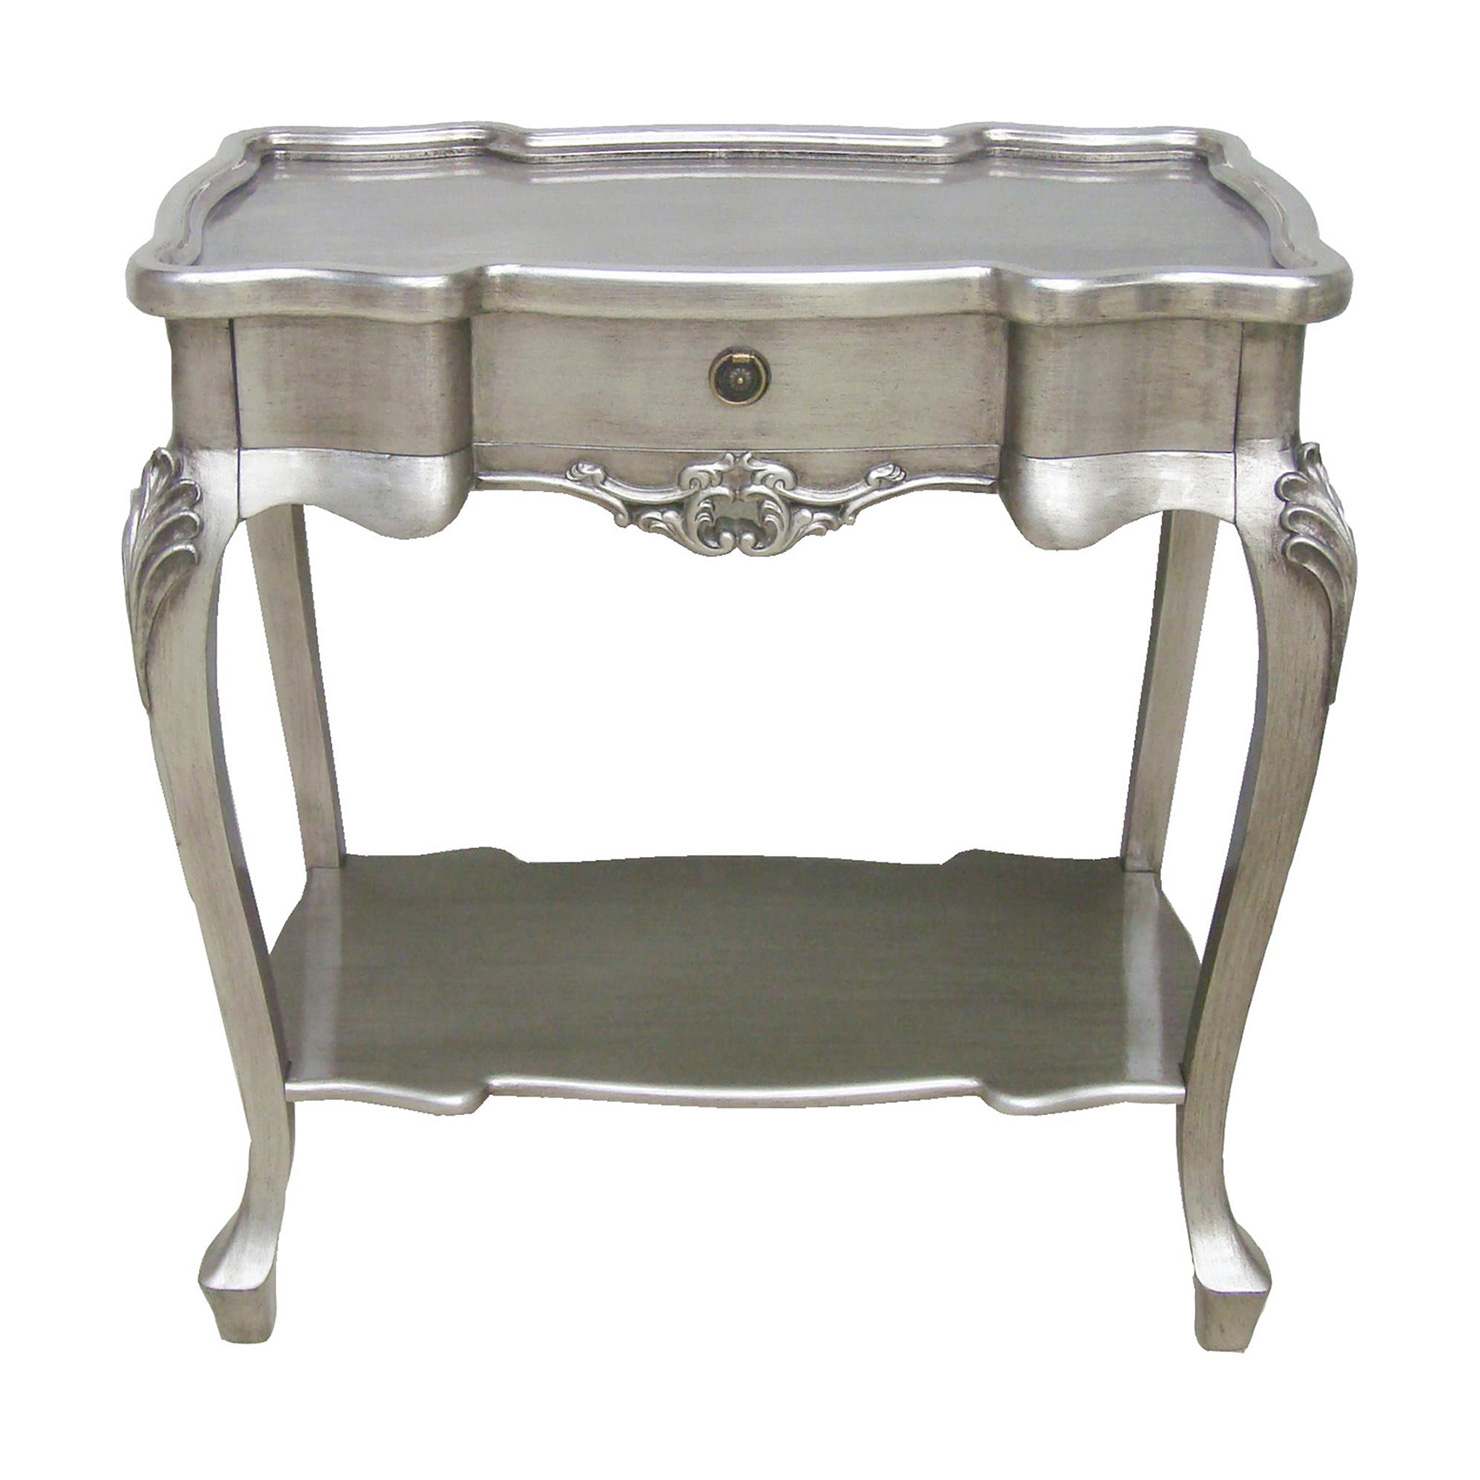 old and vintage style mirrored silver accent table with pedestal round house interior design ideas ships lantern lamp small square white coffee pier one space console pyramid area